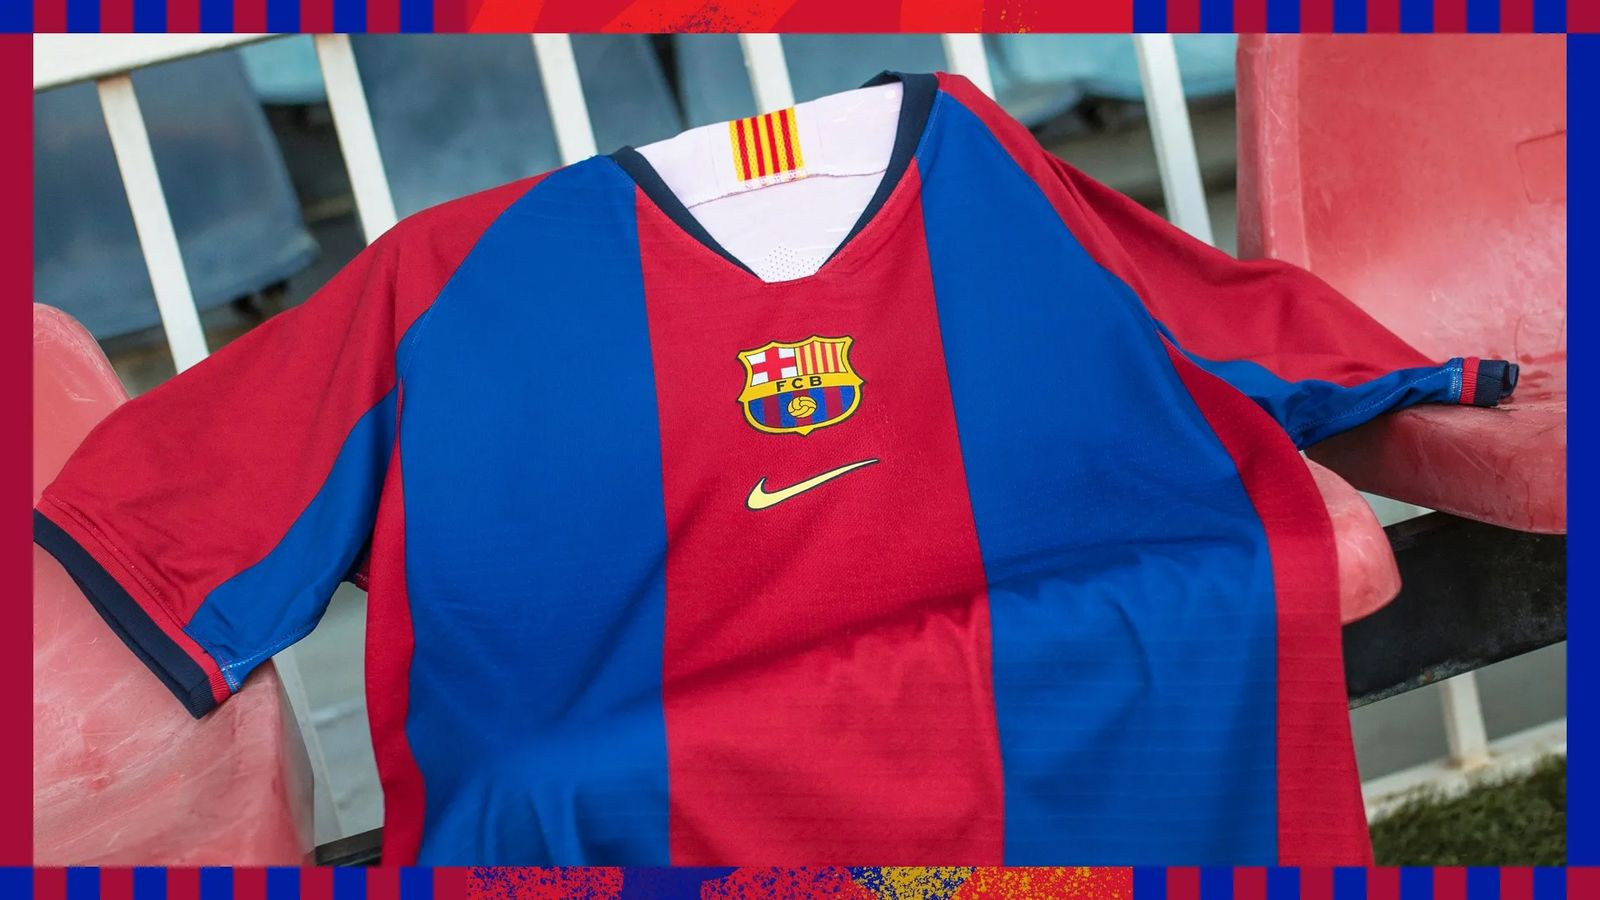 a6b257430c5 Update  The Nike Barcelona  98 remake shirt is now available to buy.